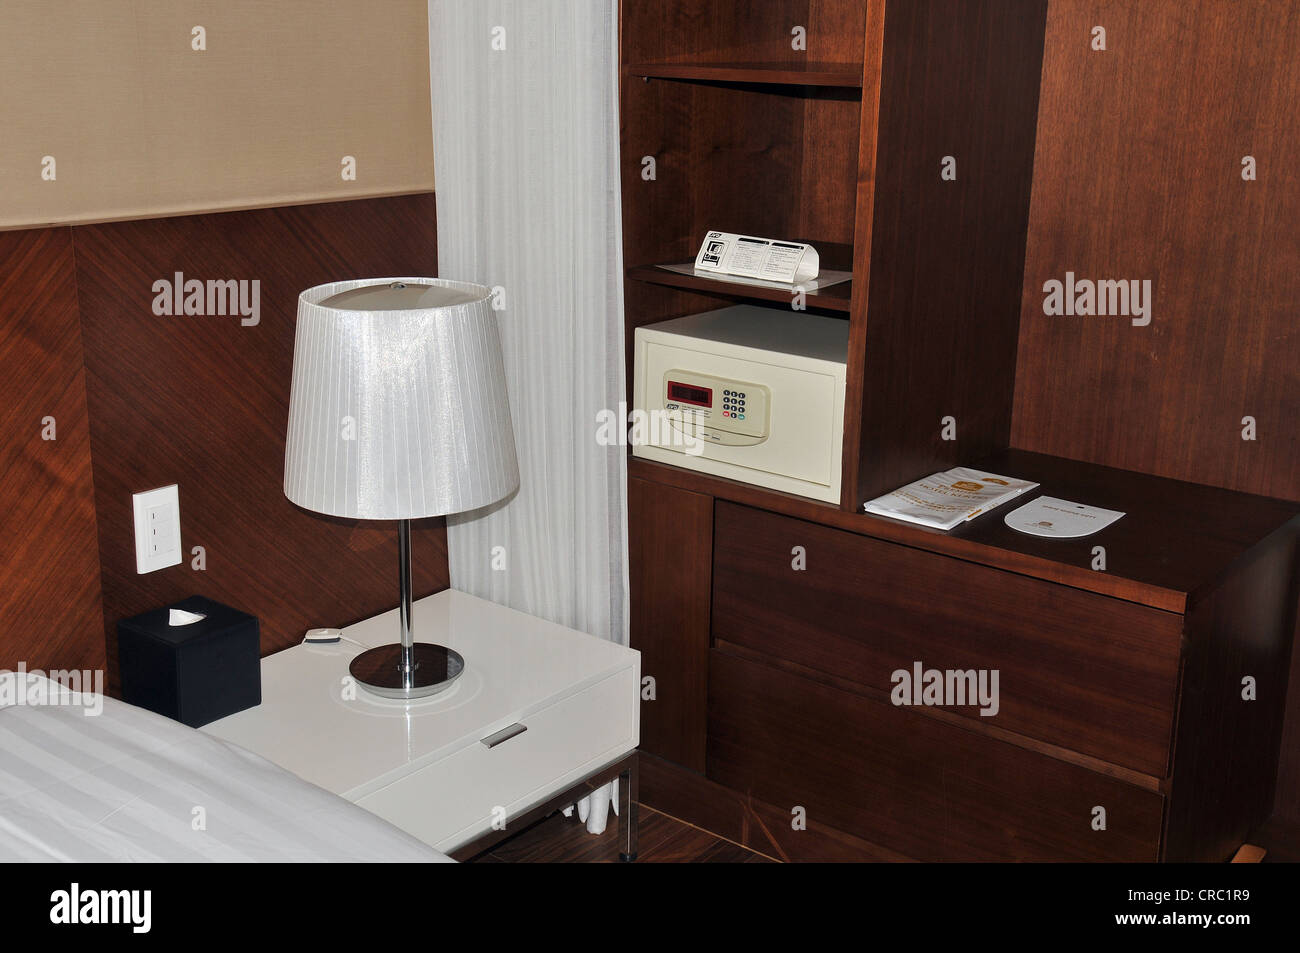 safety box in hotel room Seoul South Korea Asia Stock Photo